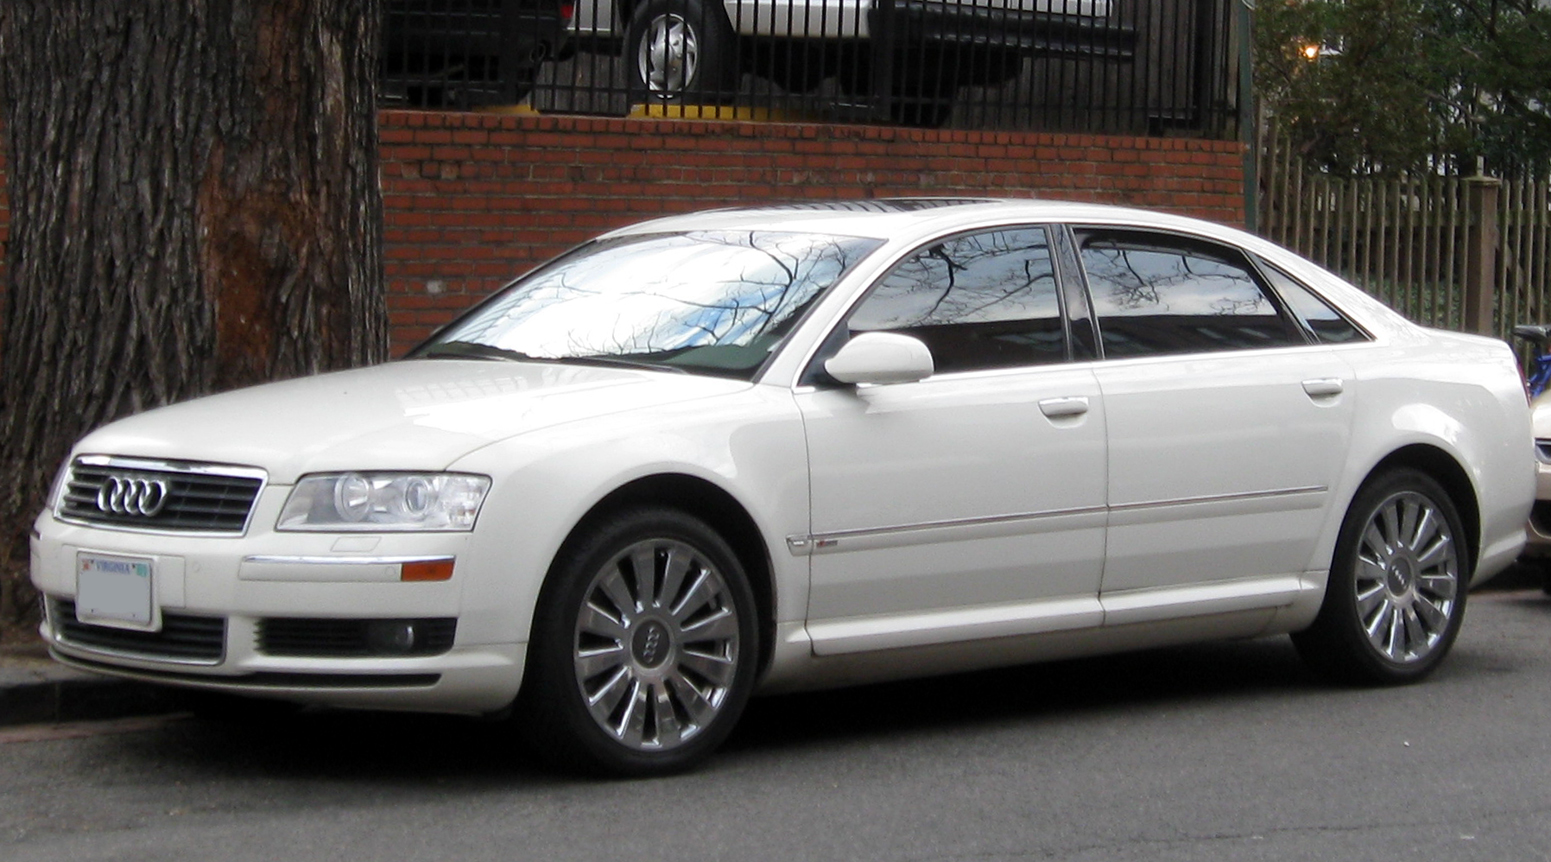 File 2004 2005 Audi A8 01 07 2012 Jpg Wikimedia Commons